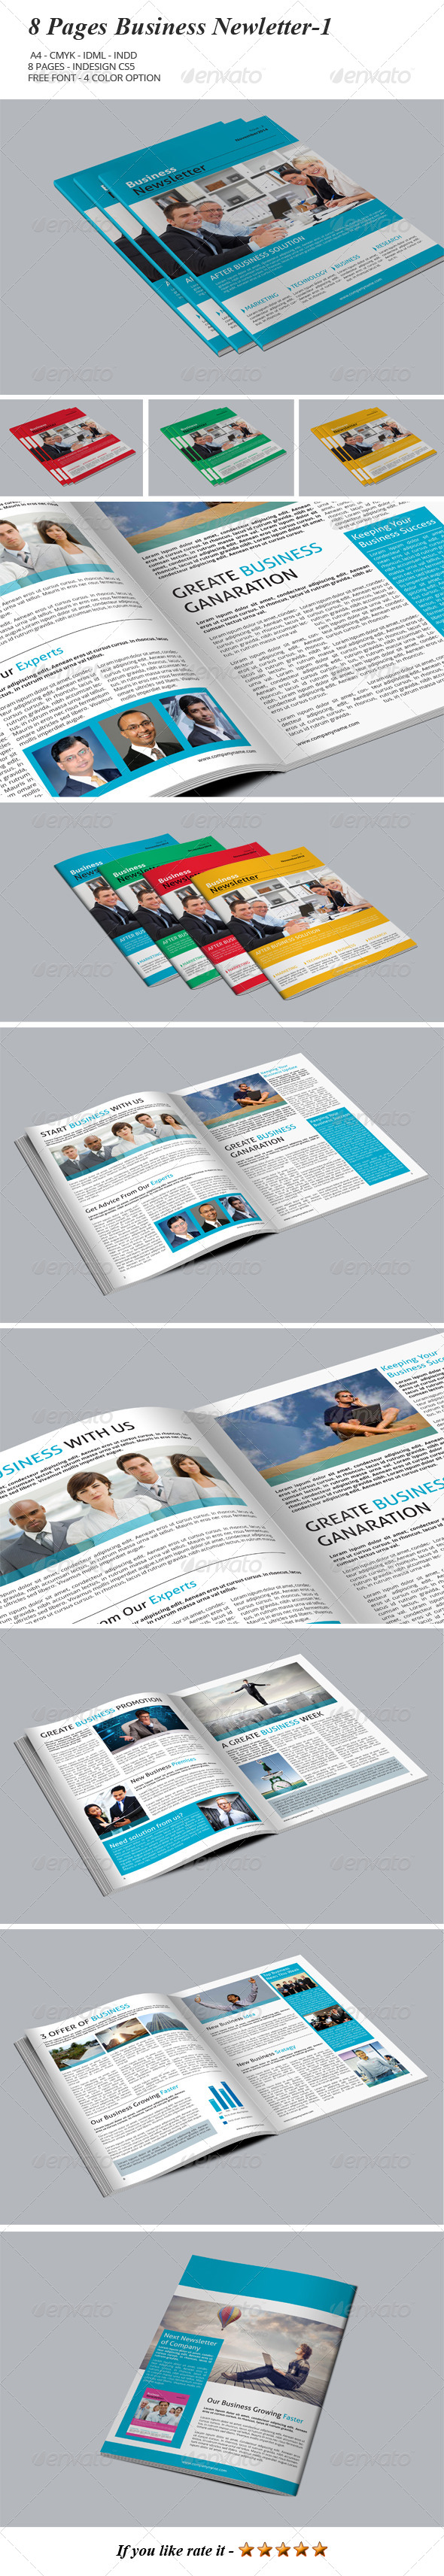 8 Pages Business Newsletter-1 - Newsletters Print Templates